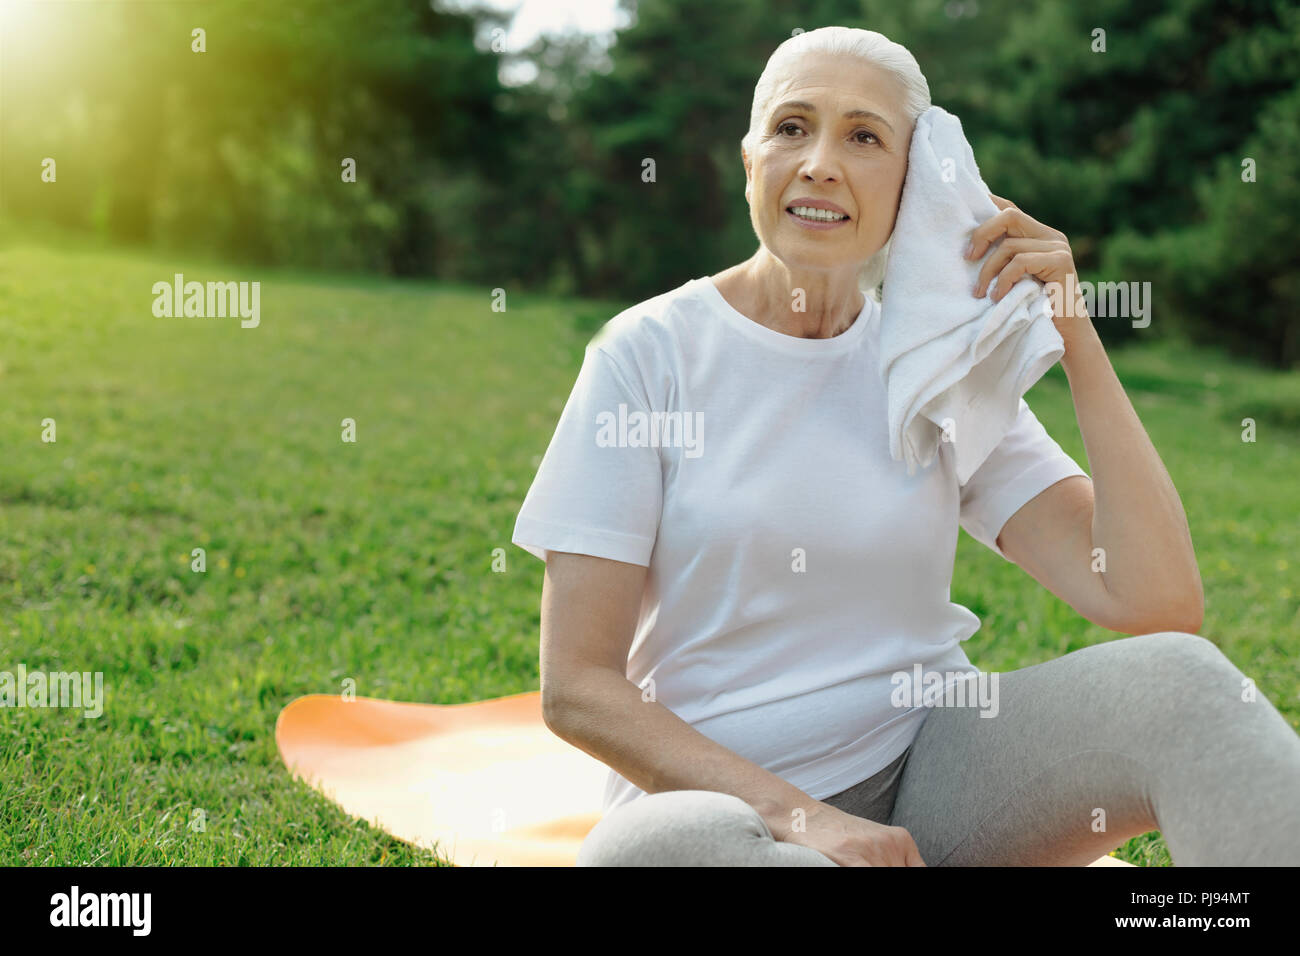 Exhausted retired woman recharging her batteries after exercising - Stock Image